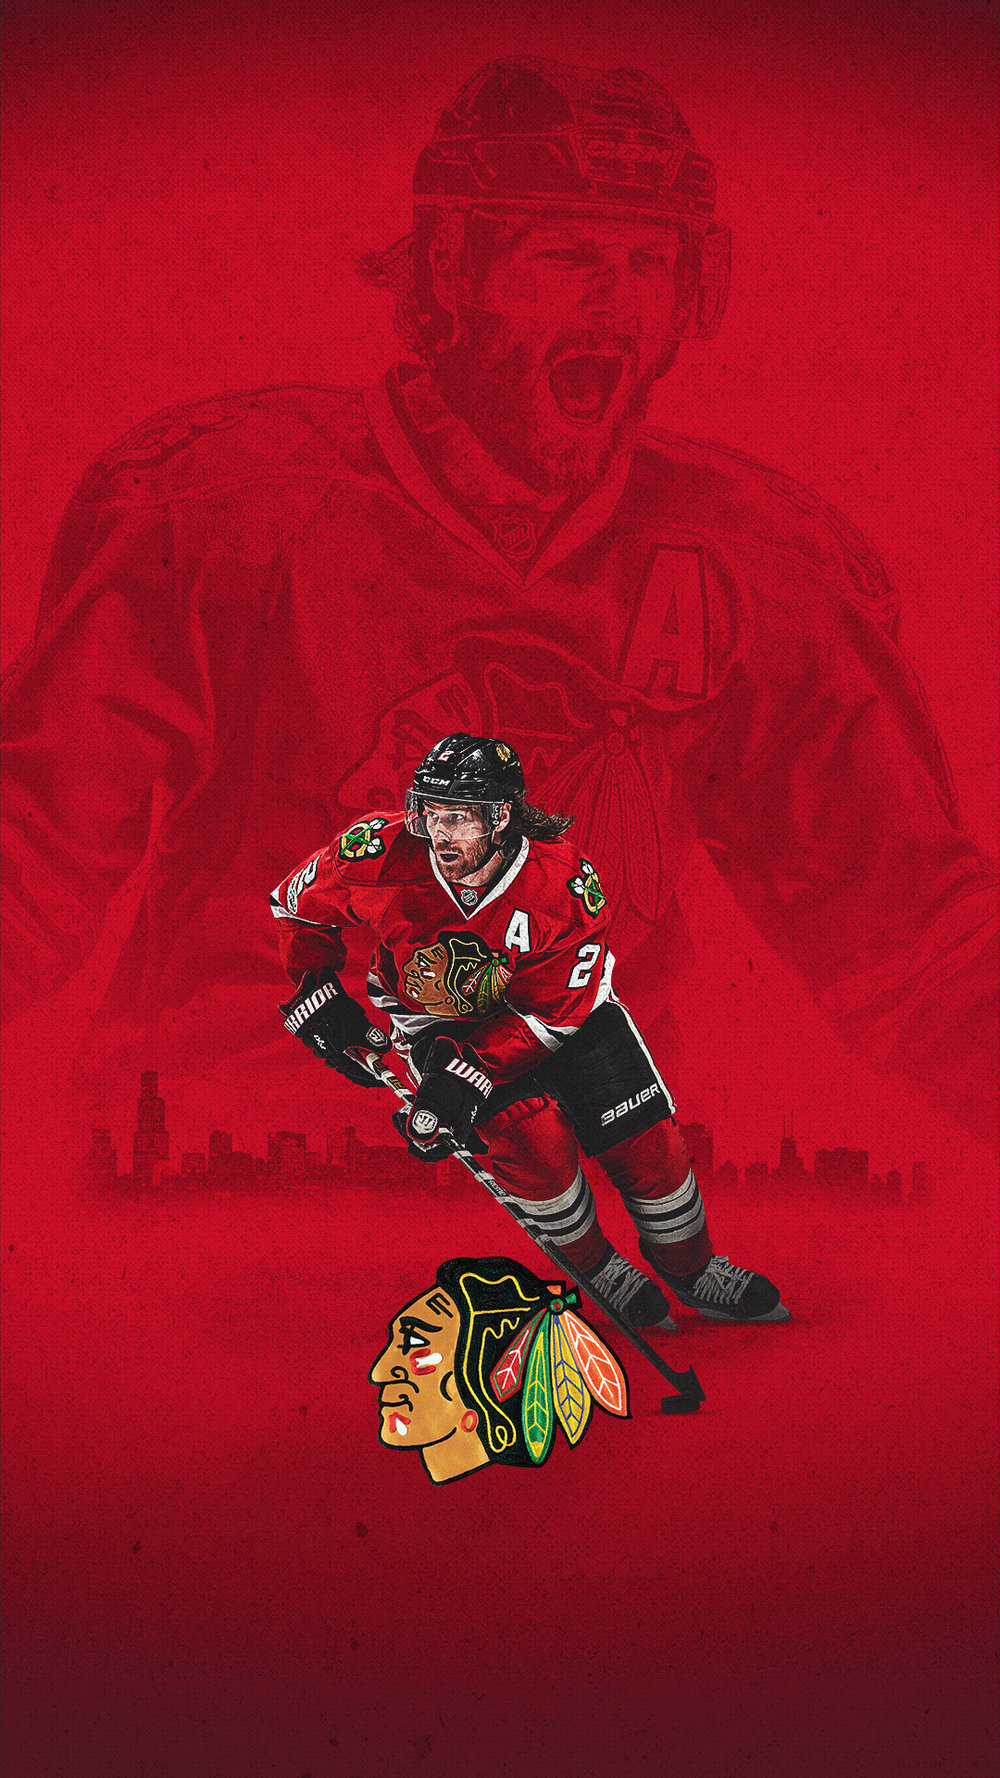 Duncan Keith Wallpaper.jpg